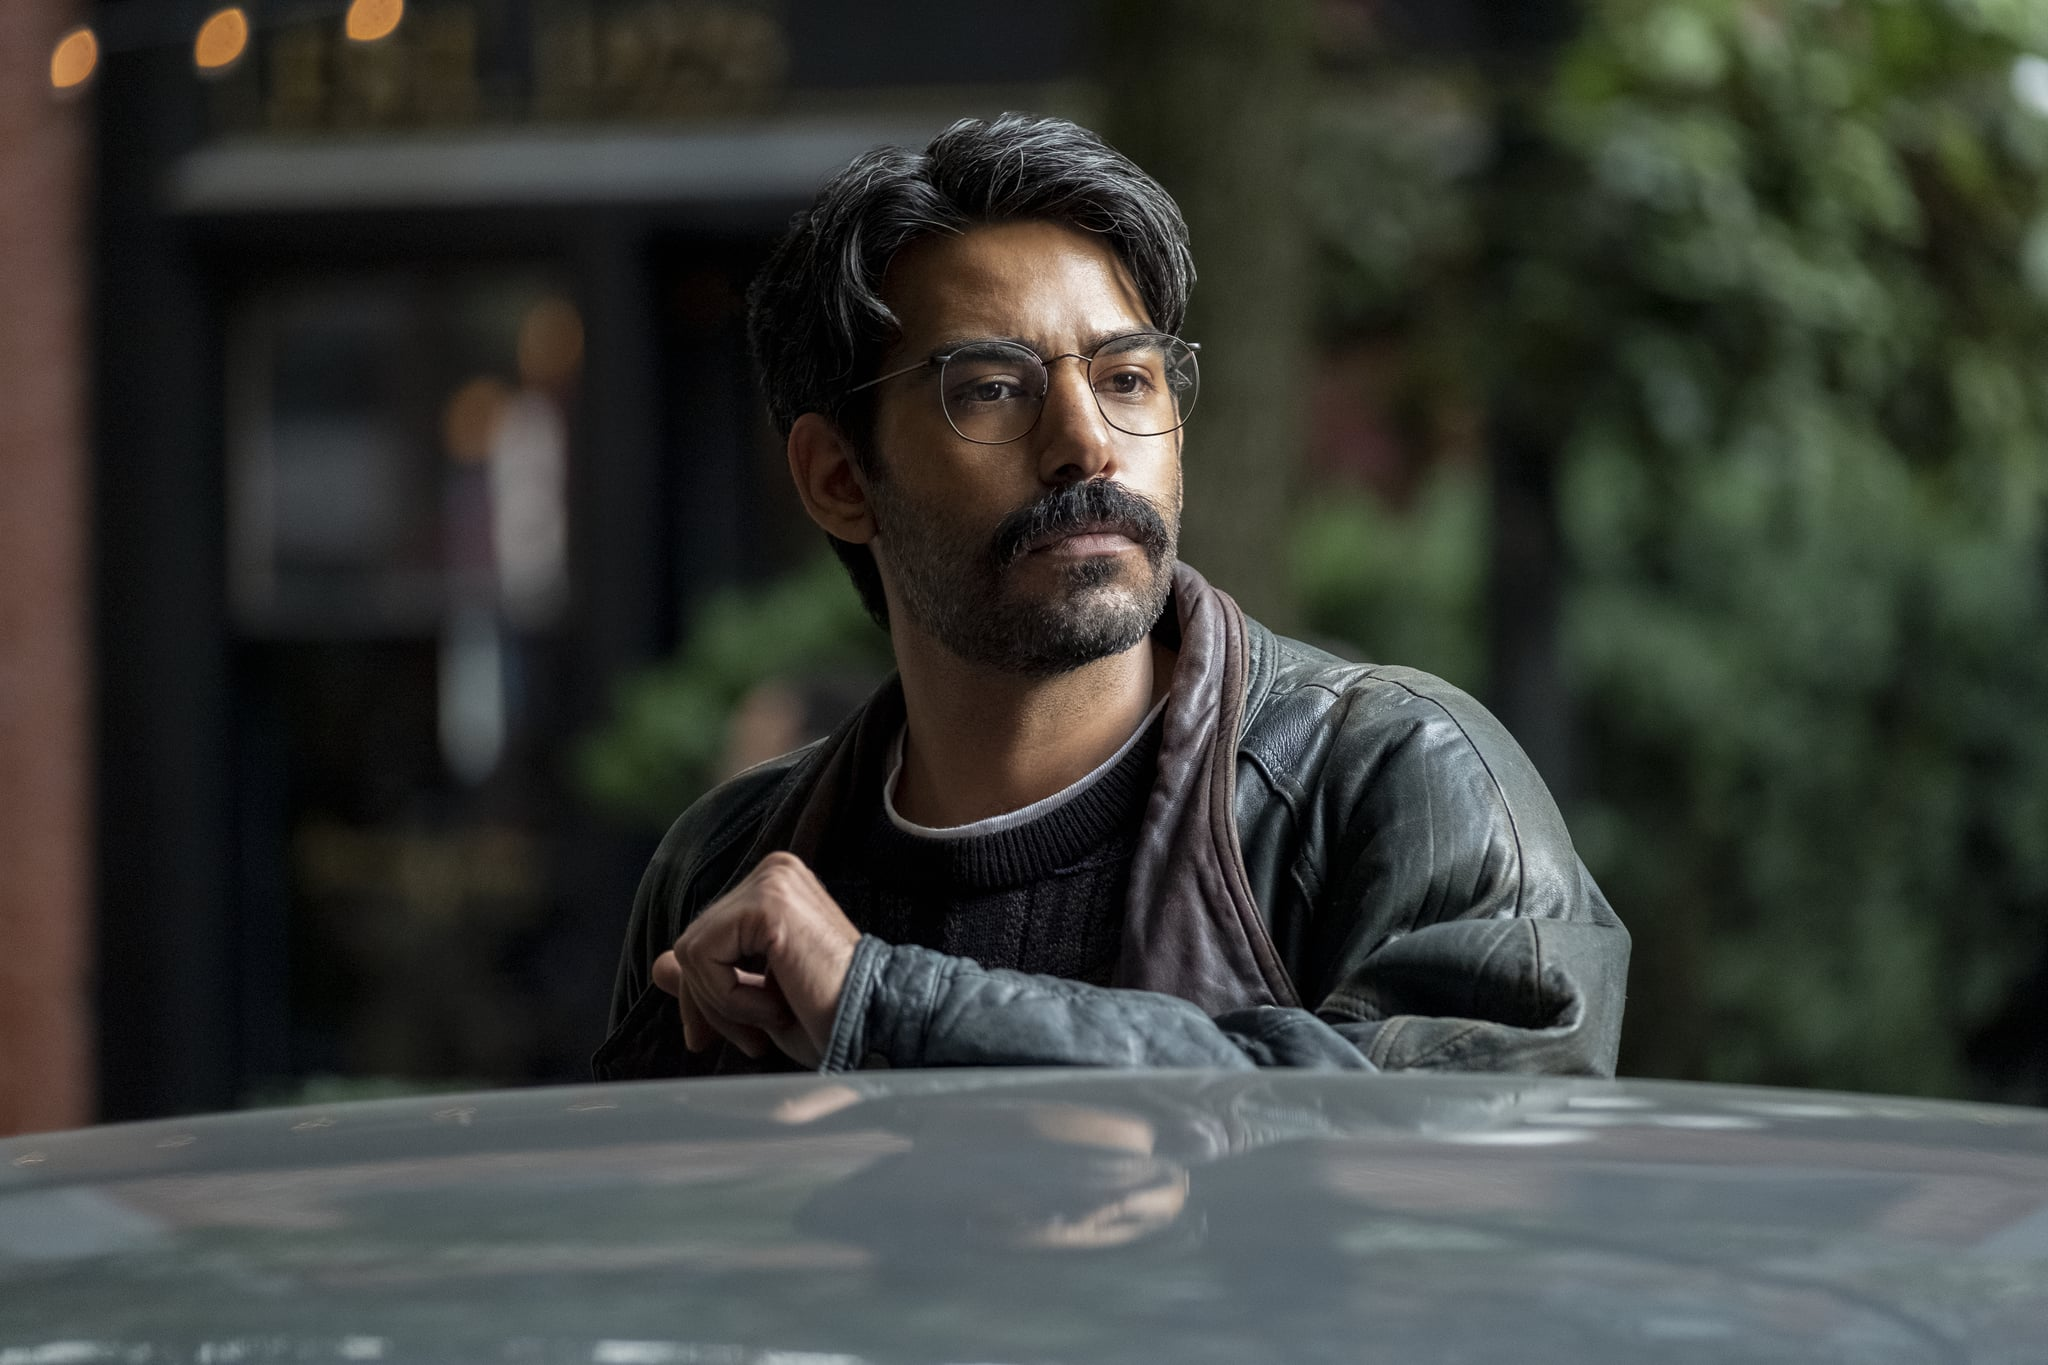 THE HAUNTING OF BLY MANOR (L to R) RAHUL KOHLI as OWEN in episode 101 of THE HAUNTING OF BLY MANOR Cr. EIKE SCHROTER/NETFLIX  2020